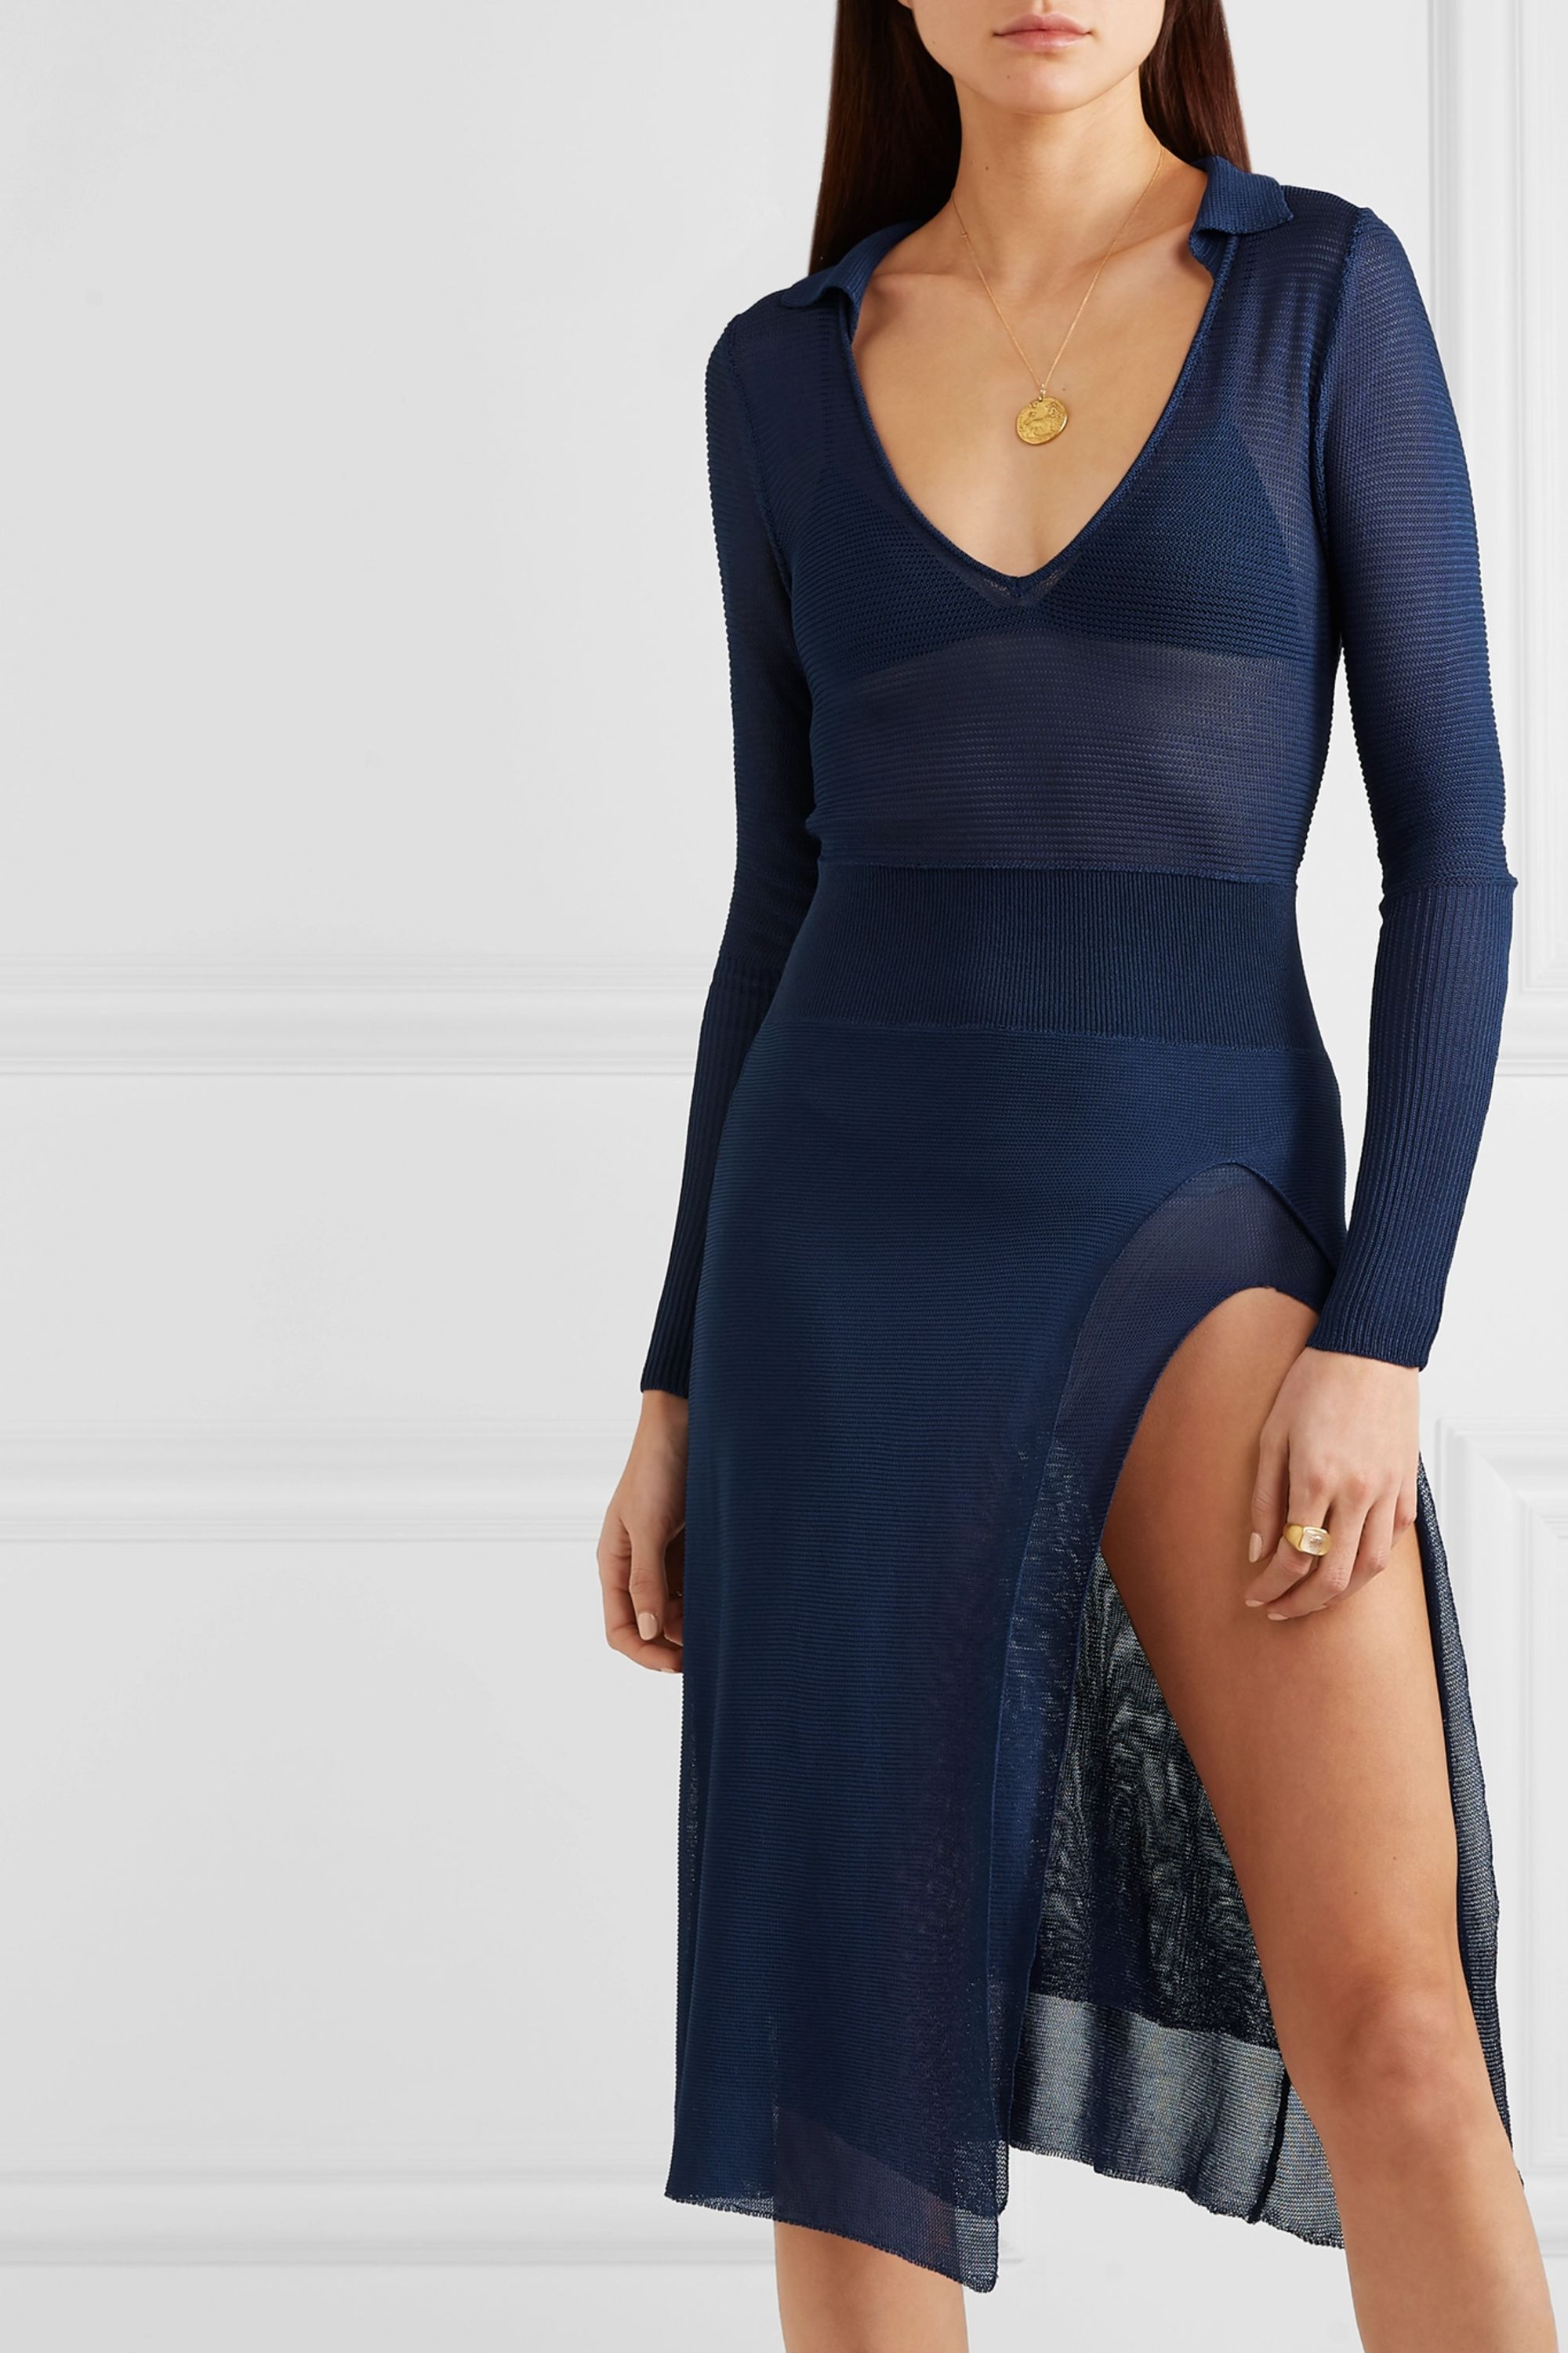 Jacquemus Notte knitted dress